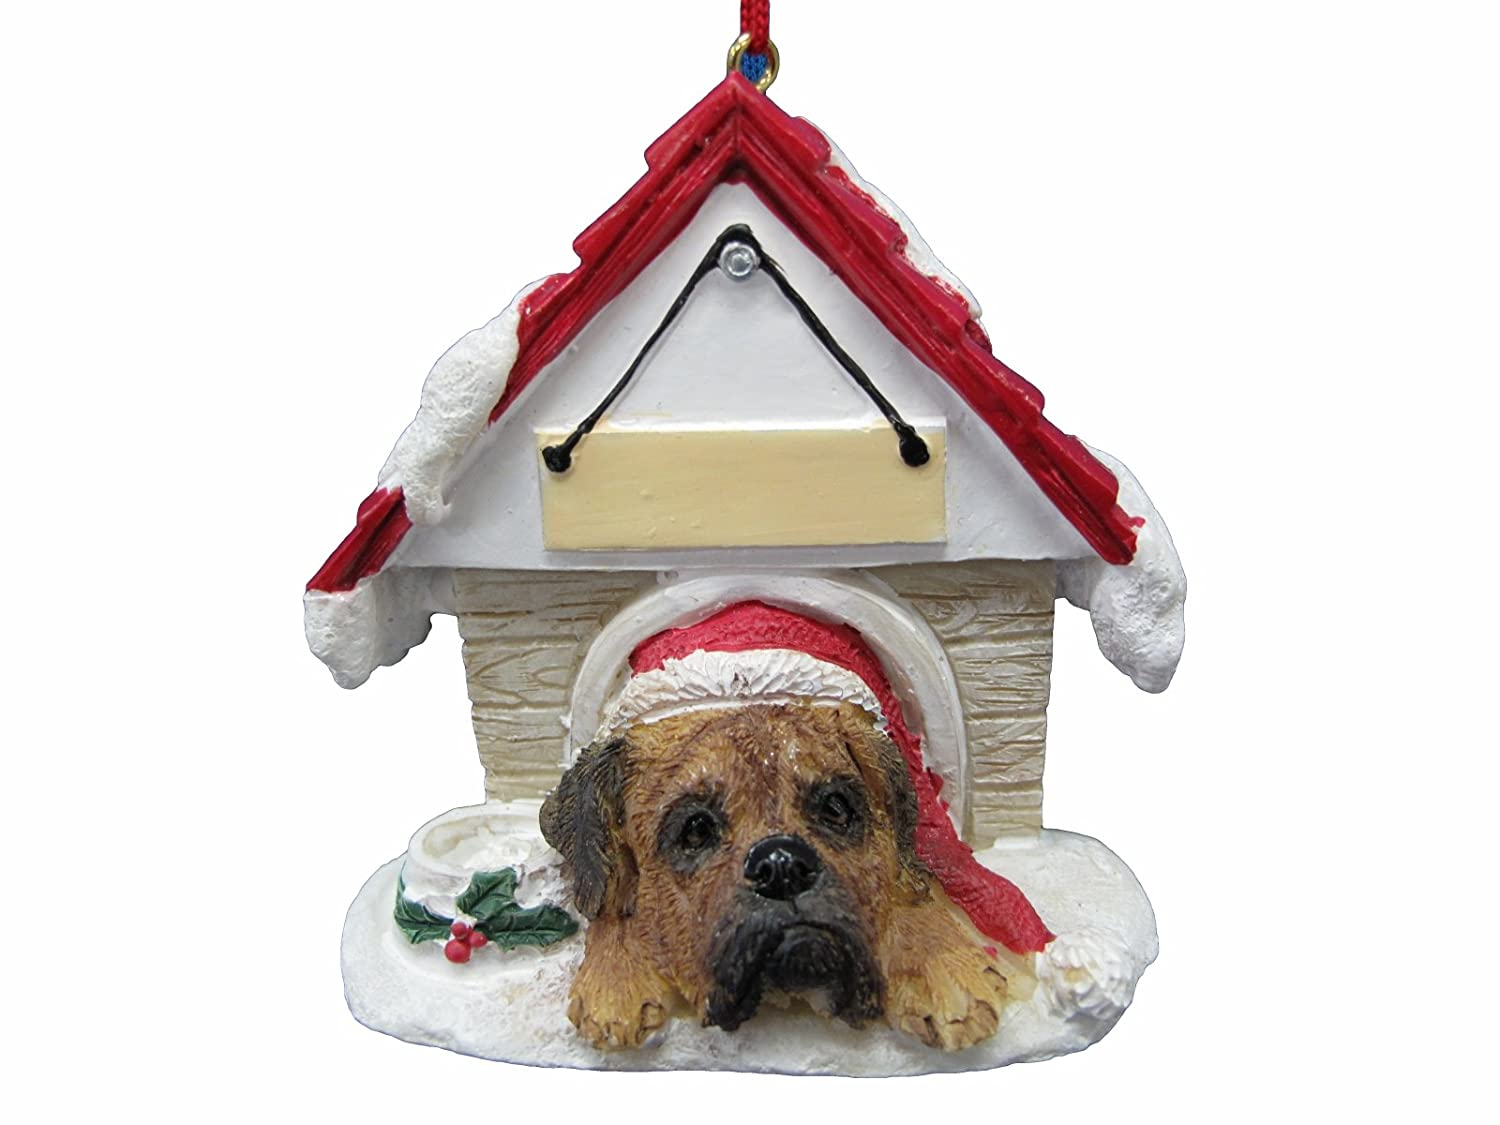 Bullmastiff Ornament A Great Gift For Bullmastiff Owners Hand Painted and Easily Personalized Doghouse Ornament With Magnetic Back